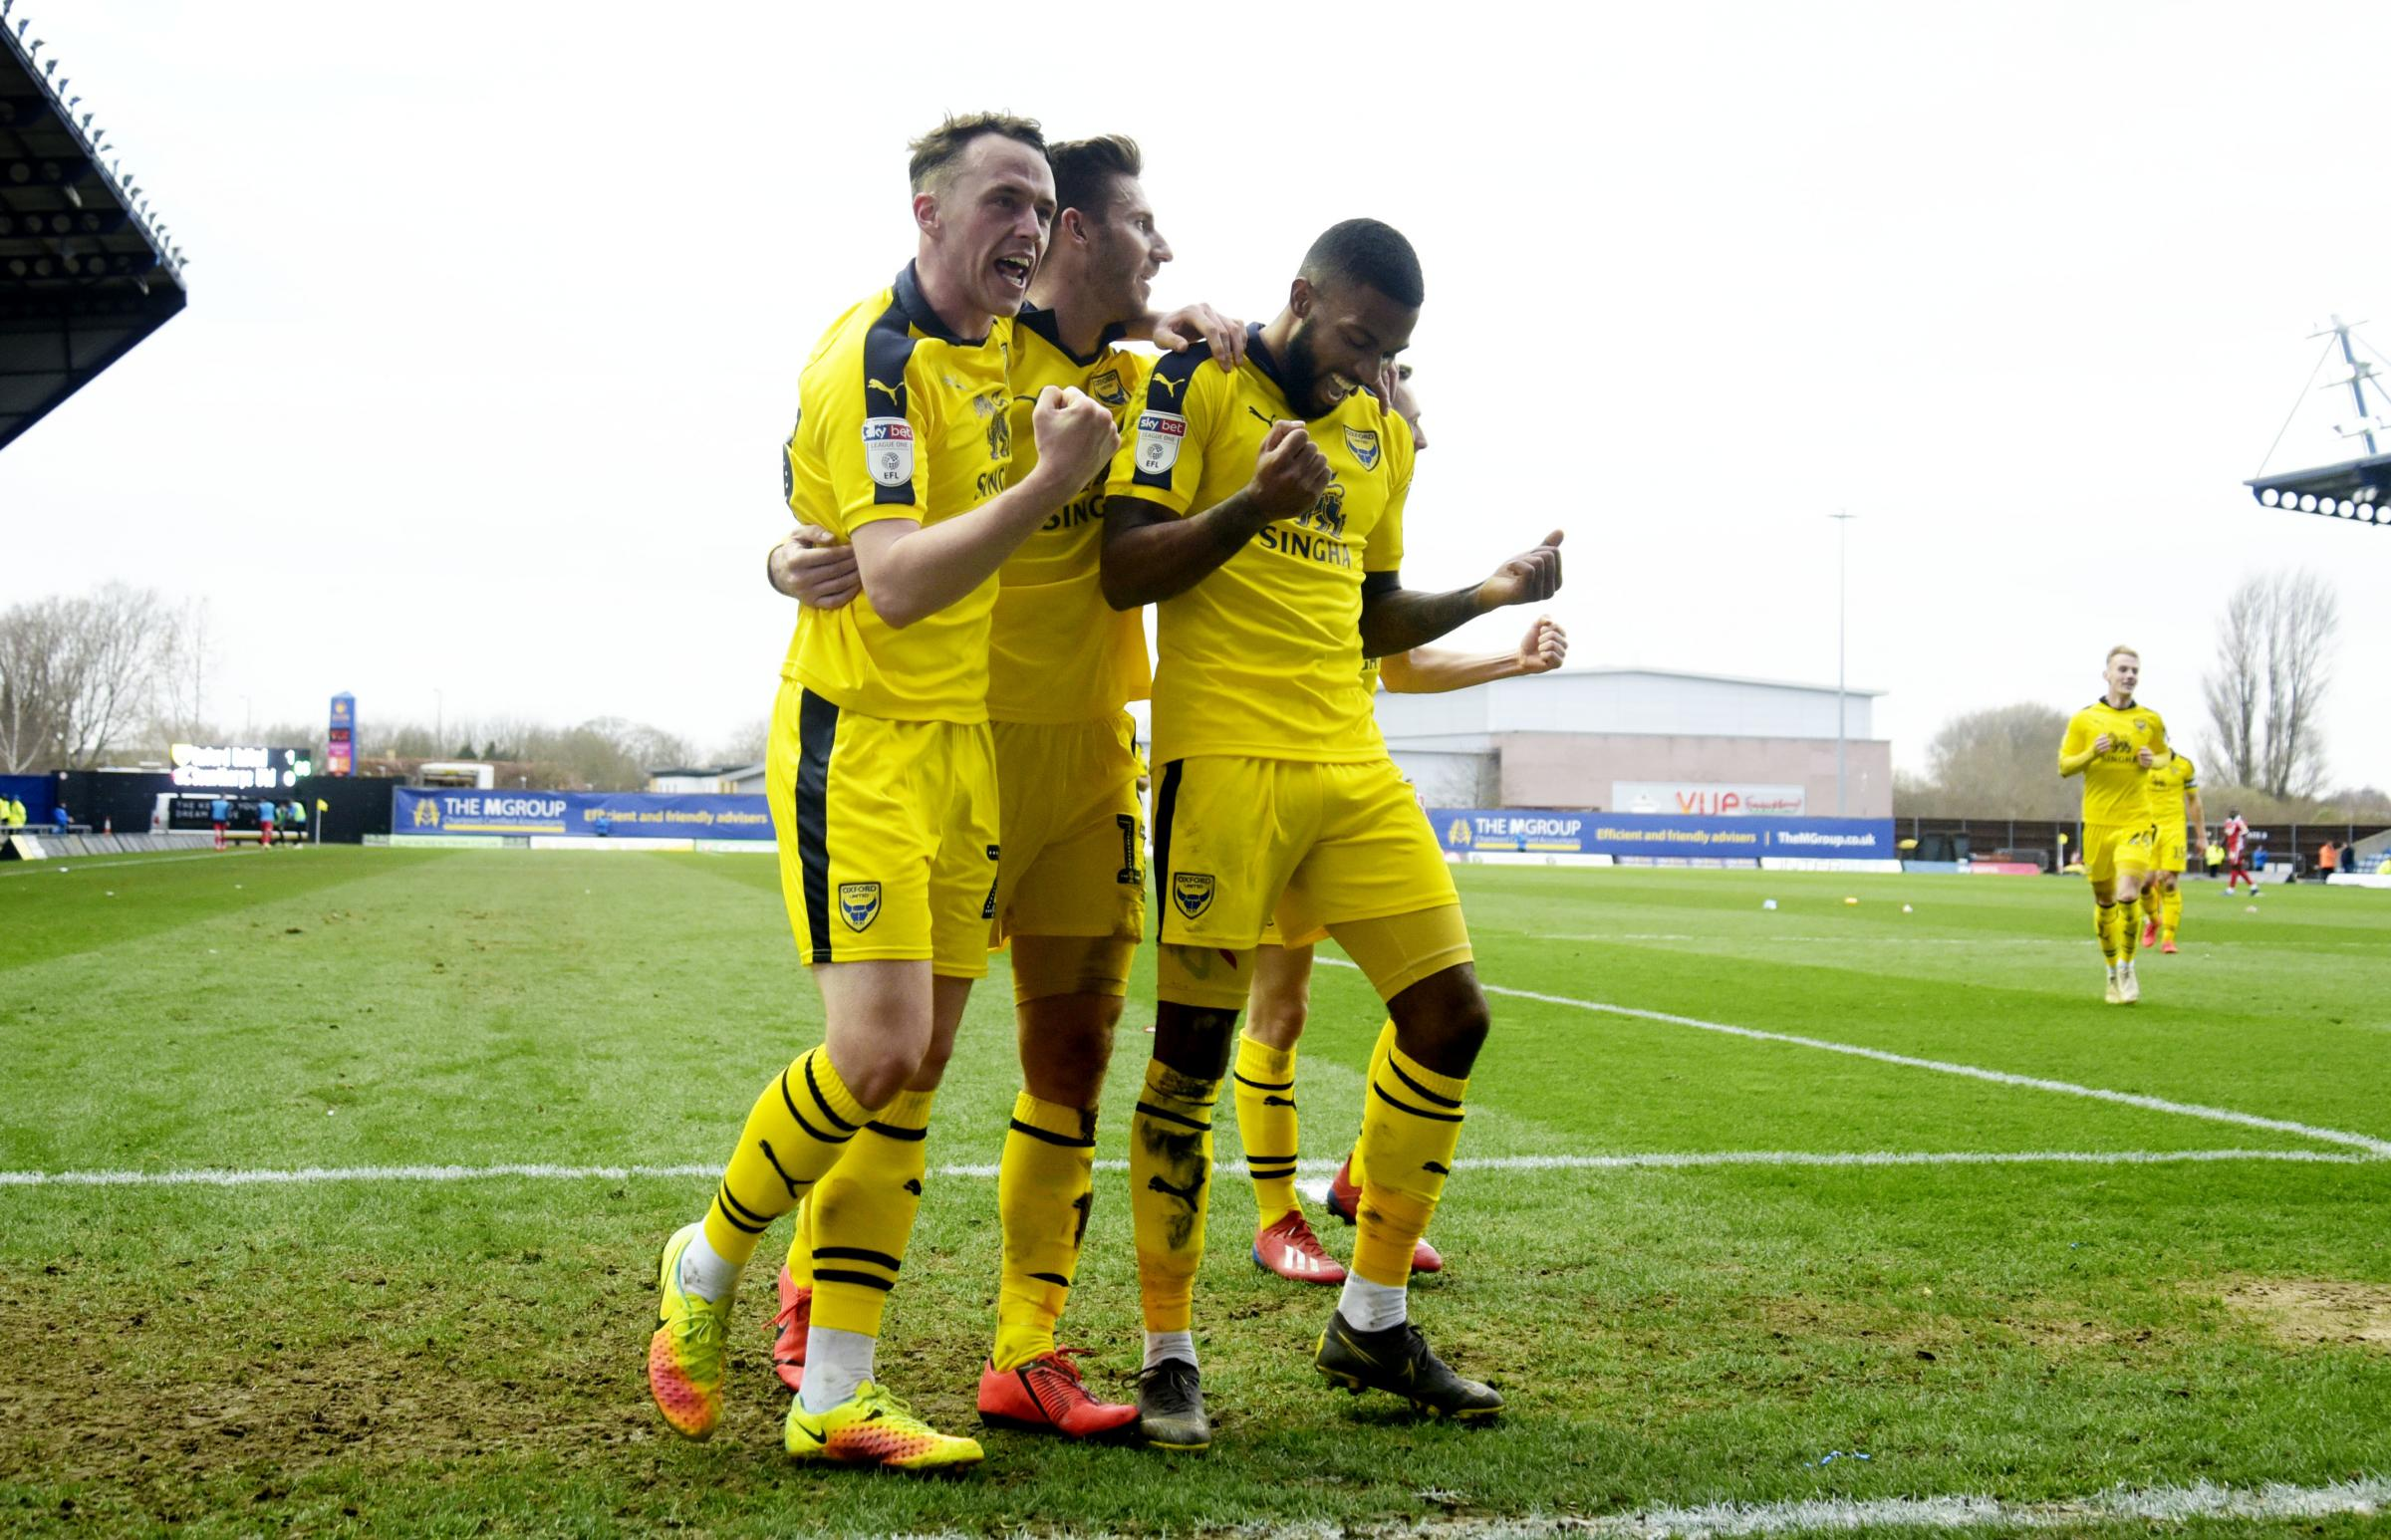 Jerome Sinclair (right) is congratulated by Sam Long (left) and James Henry after scoring what proved to be the winner last weekend   Picture: David Fleming